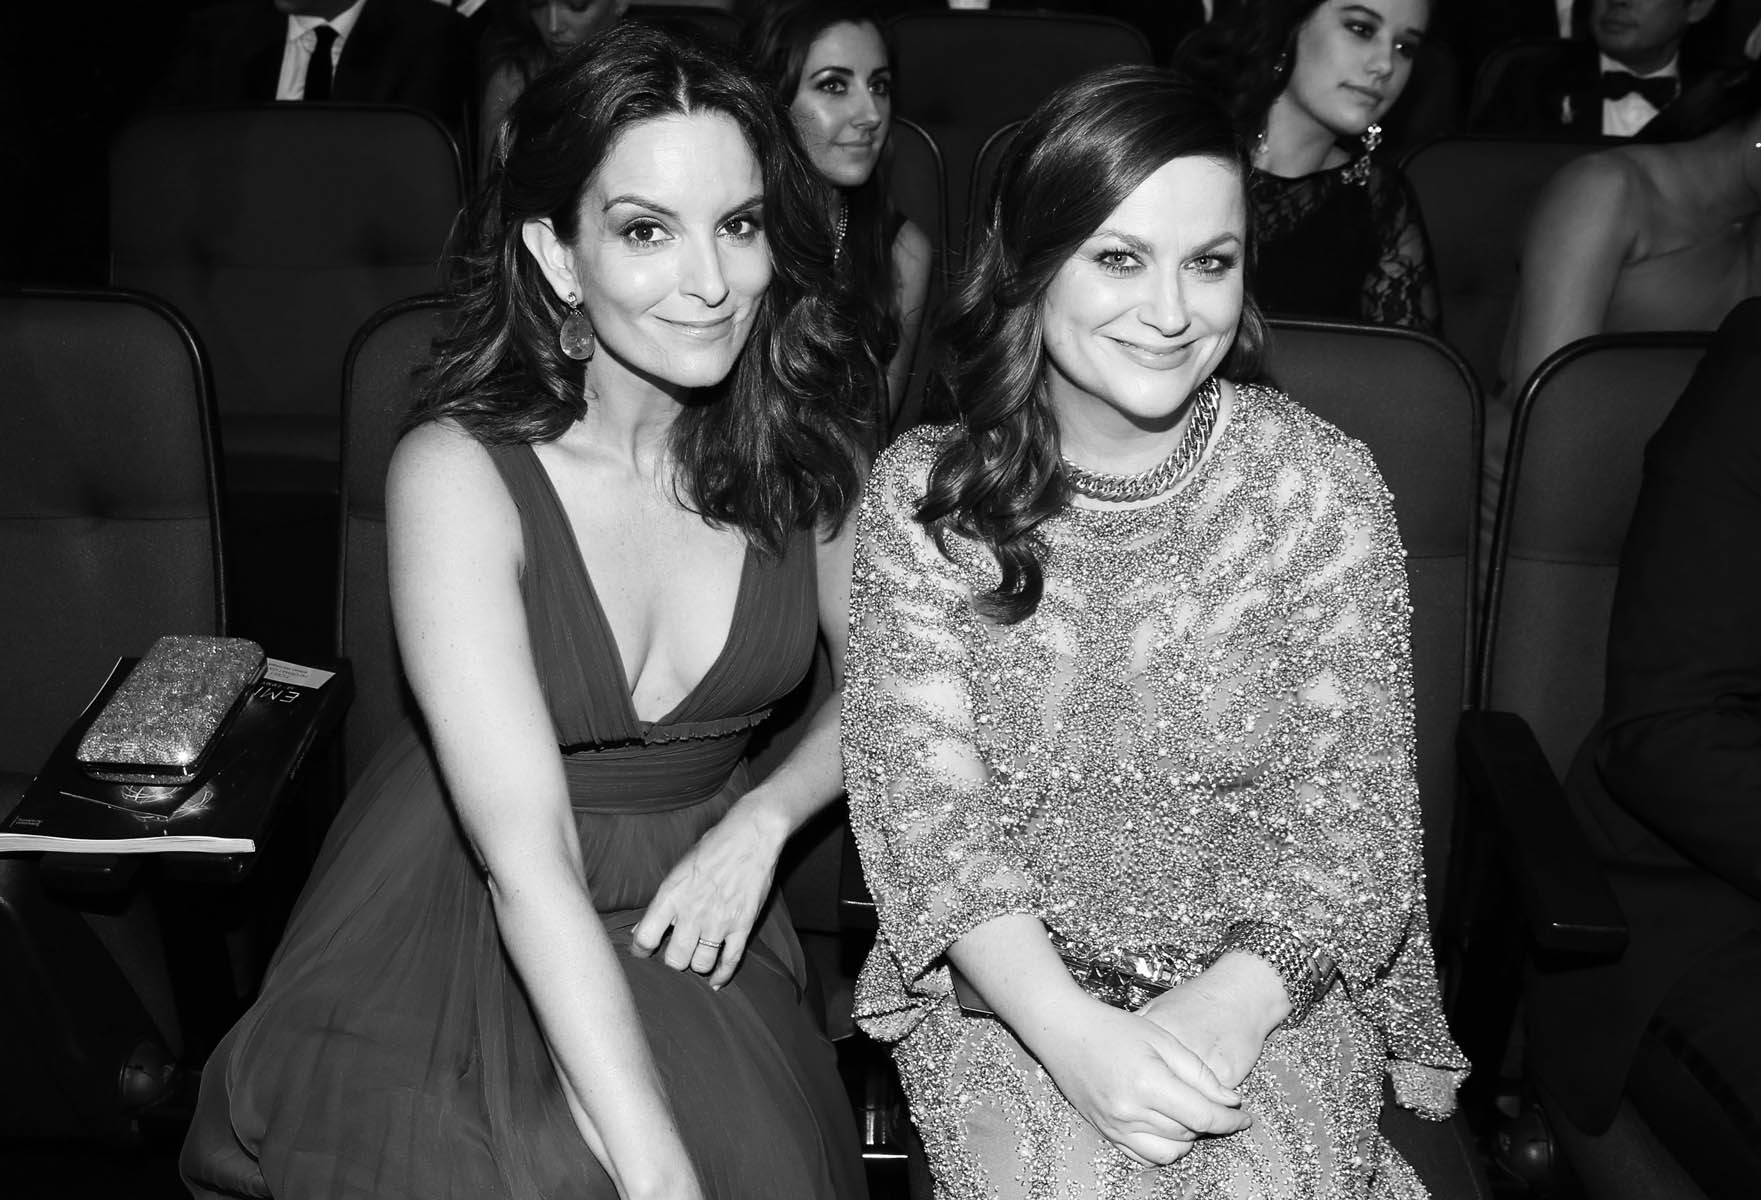 EXCLUSIVE - Tina Fey, left, and Amy Poehler appears in the audience at the 68th Primetime Emmy Awards on Sunday, Sept. 18, 2016, at the Microsoft Theater in Los Angeles. (Photo by Matt Sayles/Invision for the Television Academy/AP Images)